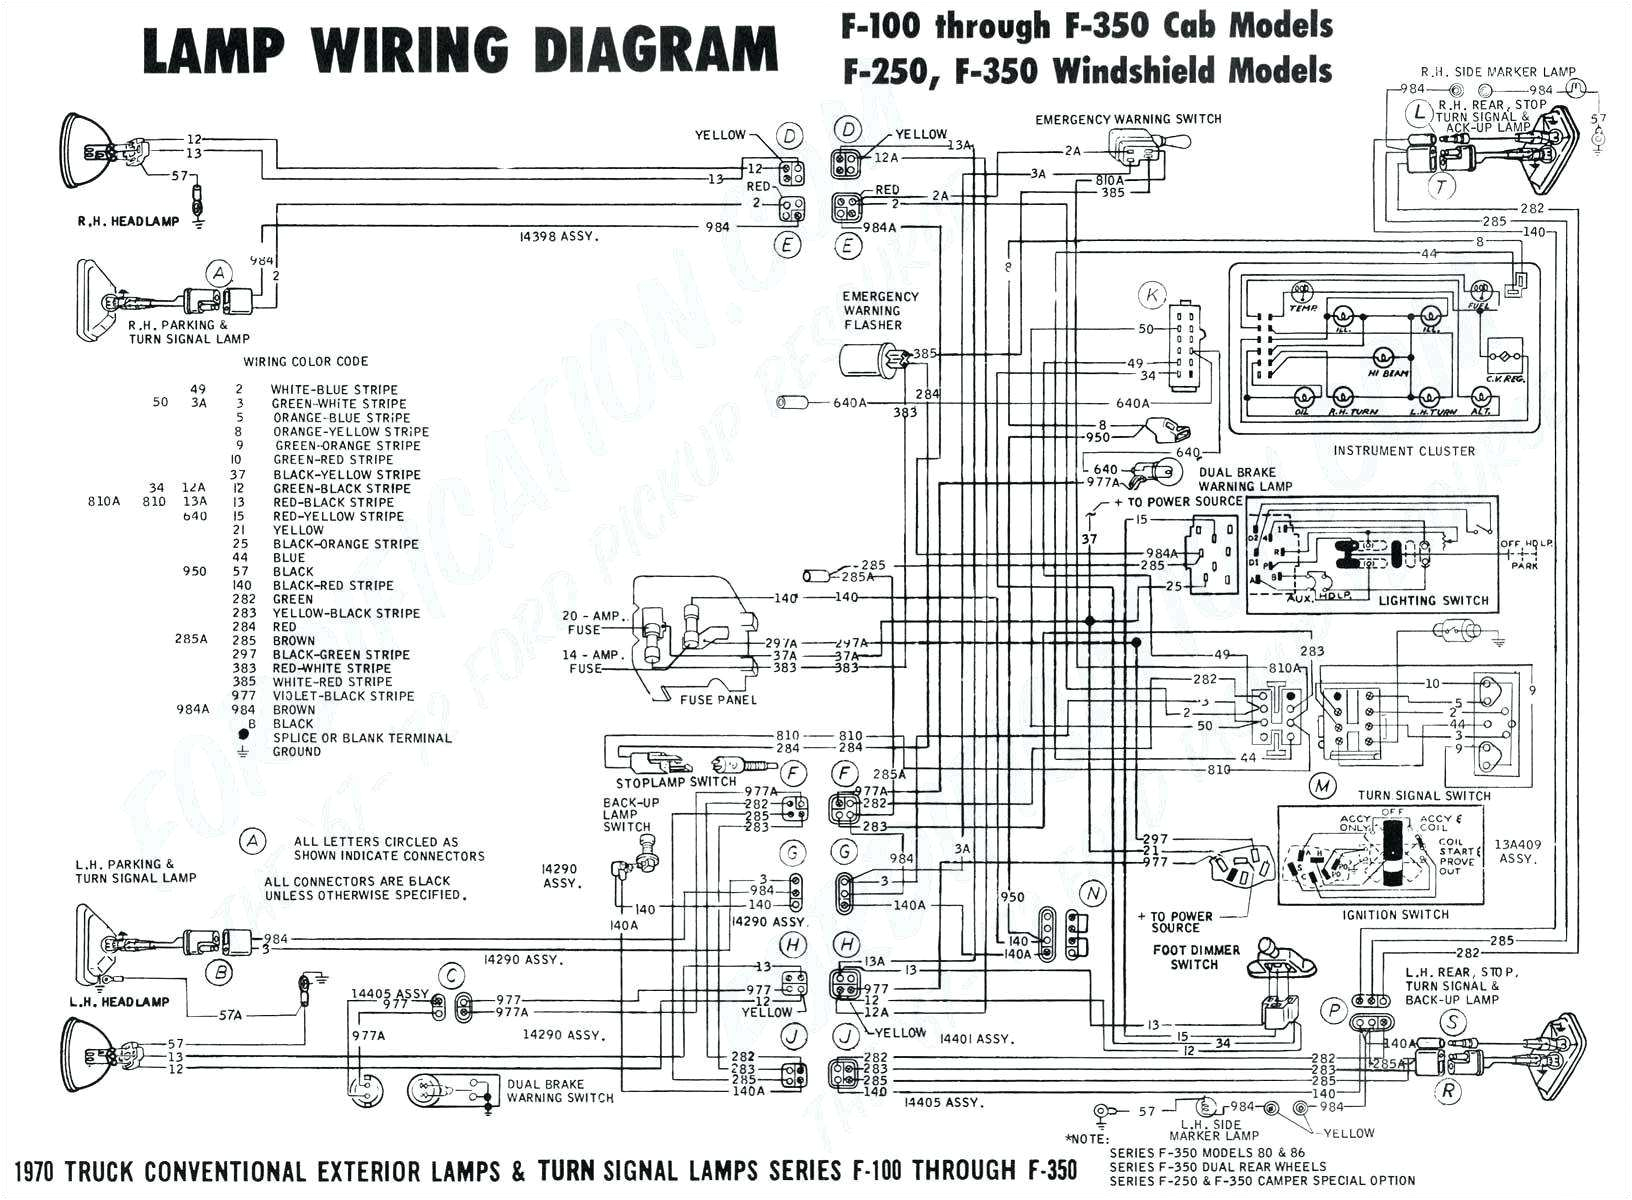 2003 dodge ram headlight wiring wiring diagrams for wiring diagram for 2004 dodge ram 2500 diesel